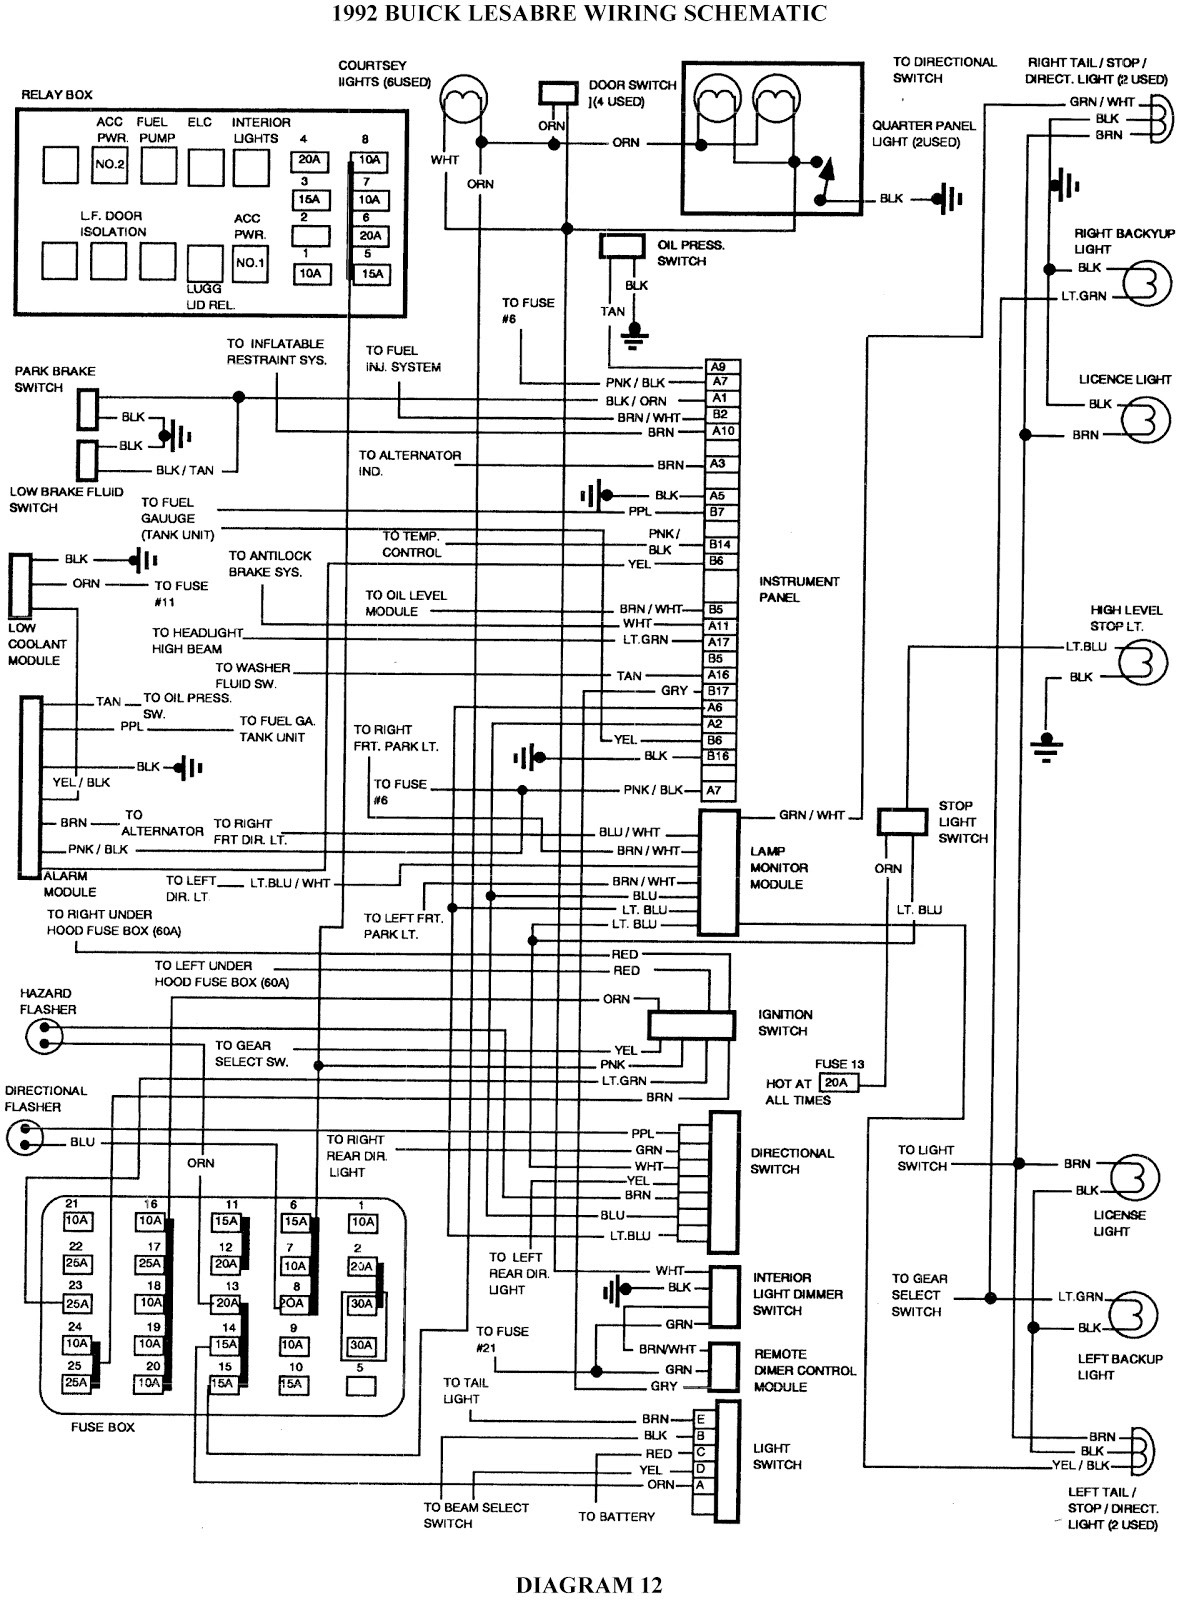 1992 Buick LeSabre Schematic Wiring Diagrams   Schematic